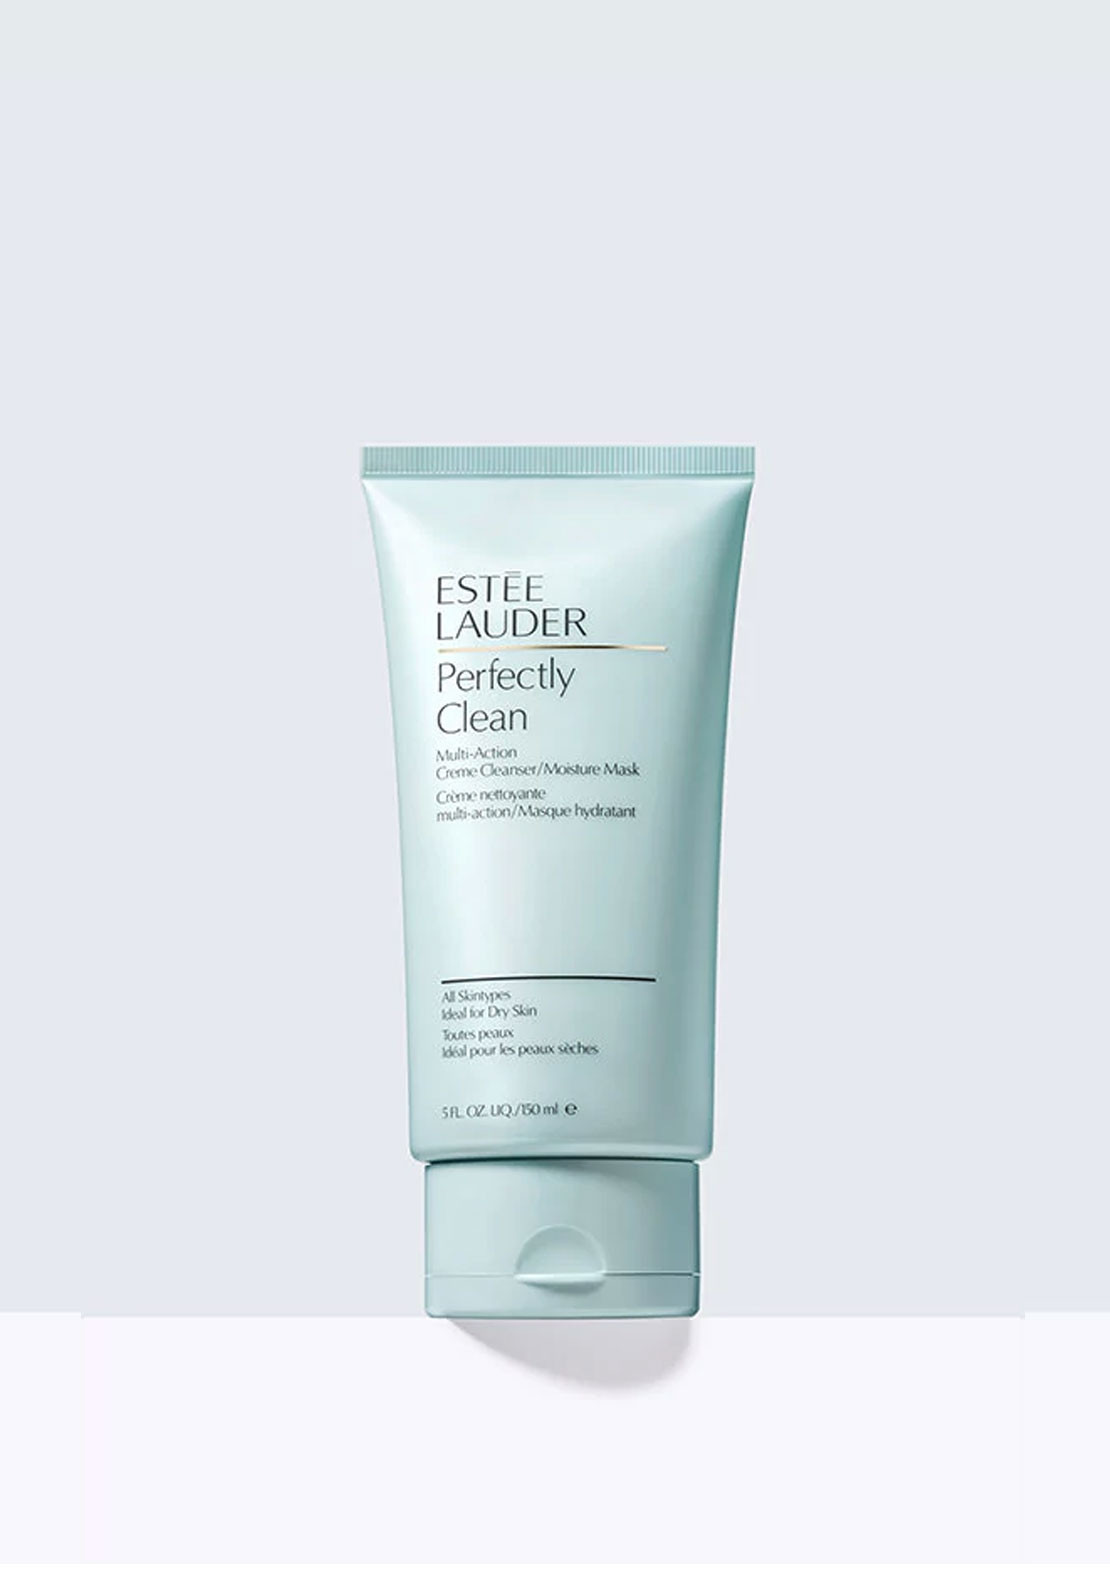 Estee Lauder Perfectly Clean Multi-action Cream Cleanser / Moisture Mask 150ml